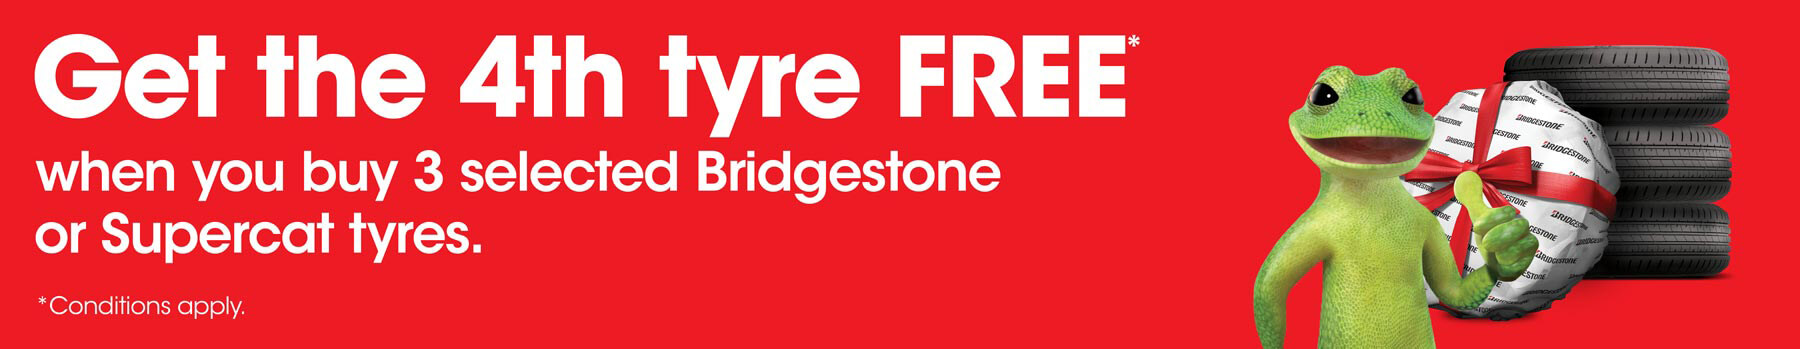 Get the 4th tyre FREE or cash back on selected car or SUV tyres